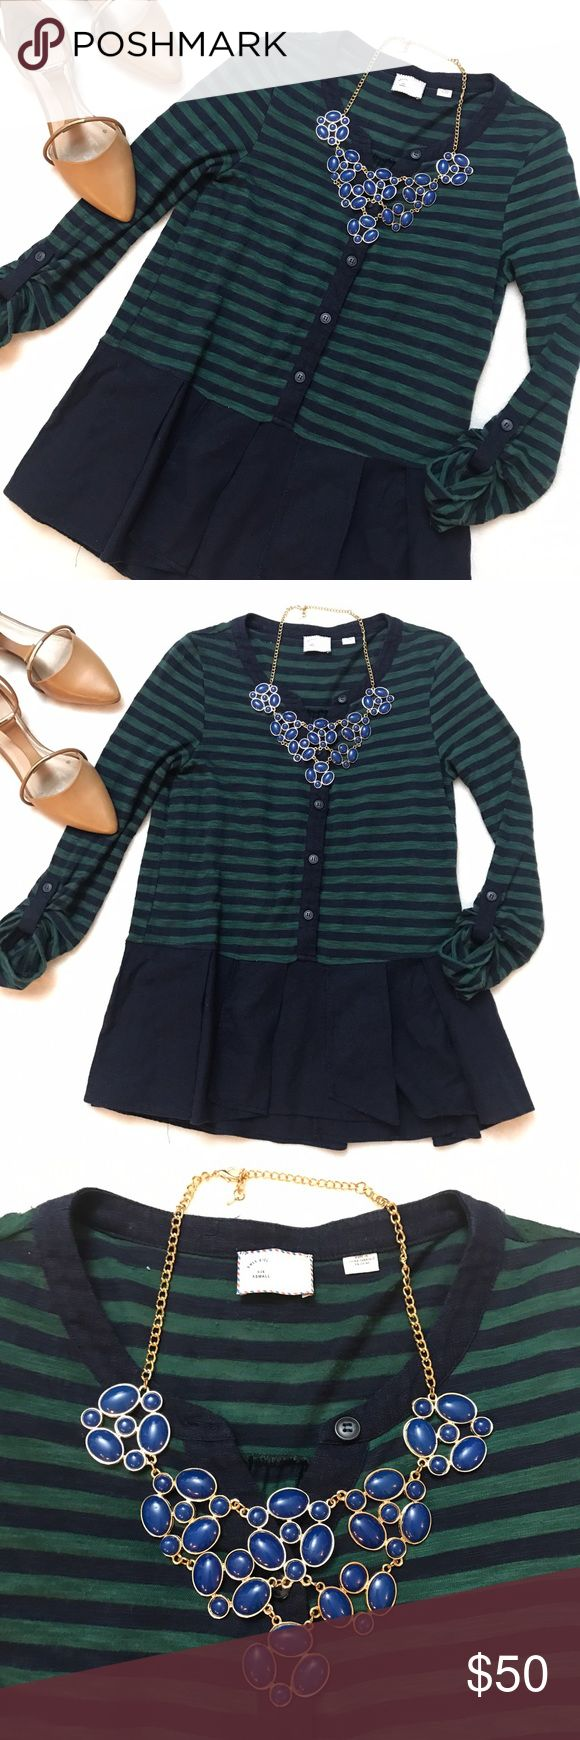 """ANTHROPOLOGIE Green Blue Striped Peplum Henley Top ANTHROPOLOGIE Green Blue Striped Peplum Henley Top by Postmark, size XS. Henley button front, roll tab sleeves, linen Pleated peplum trim. So cute! Bust measures 31"""" and length is 25.5"""". Cotton/polyester/linen/rayon. Anthropologie Tops Blouses"""